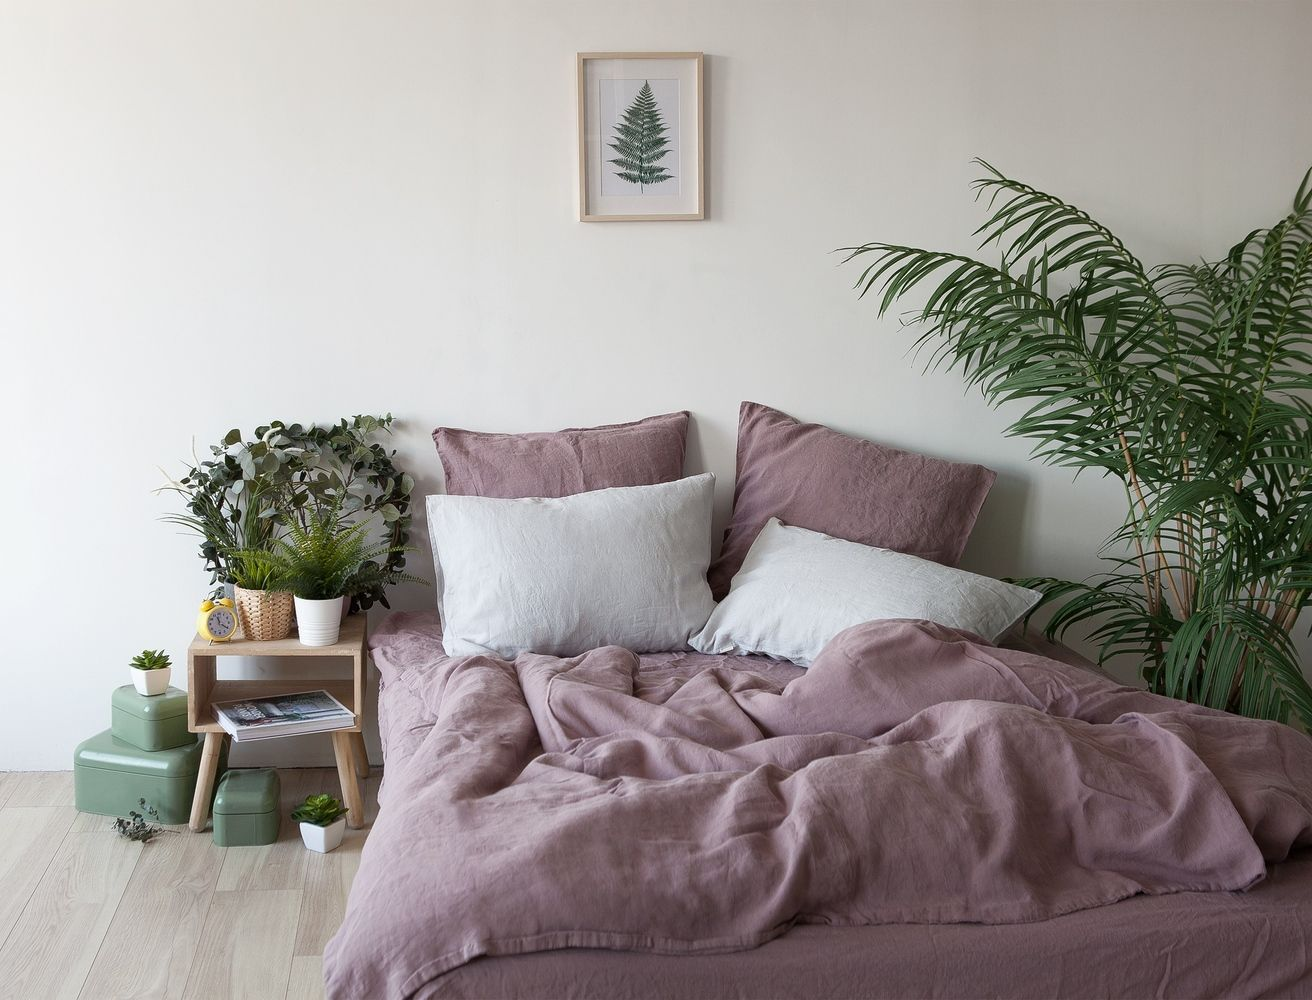 Linen Duvet Cover In Dusty Rose Pink Stonewashed Linen Bedding